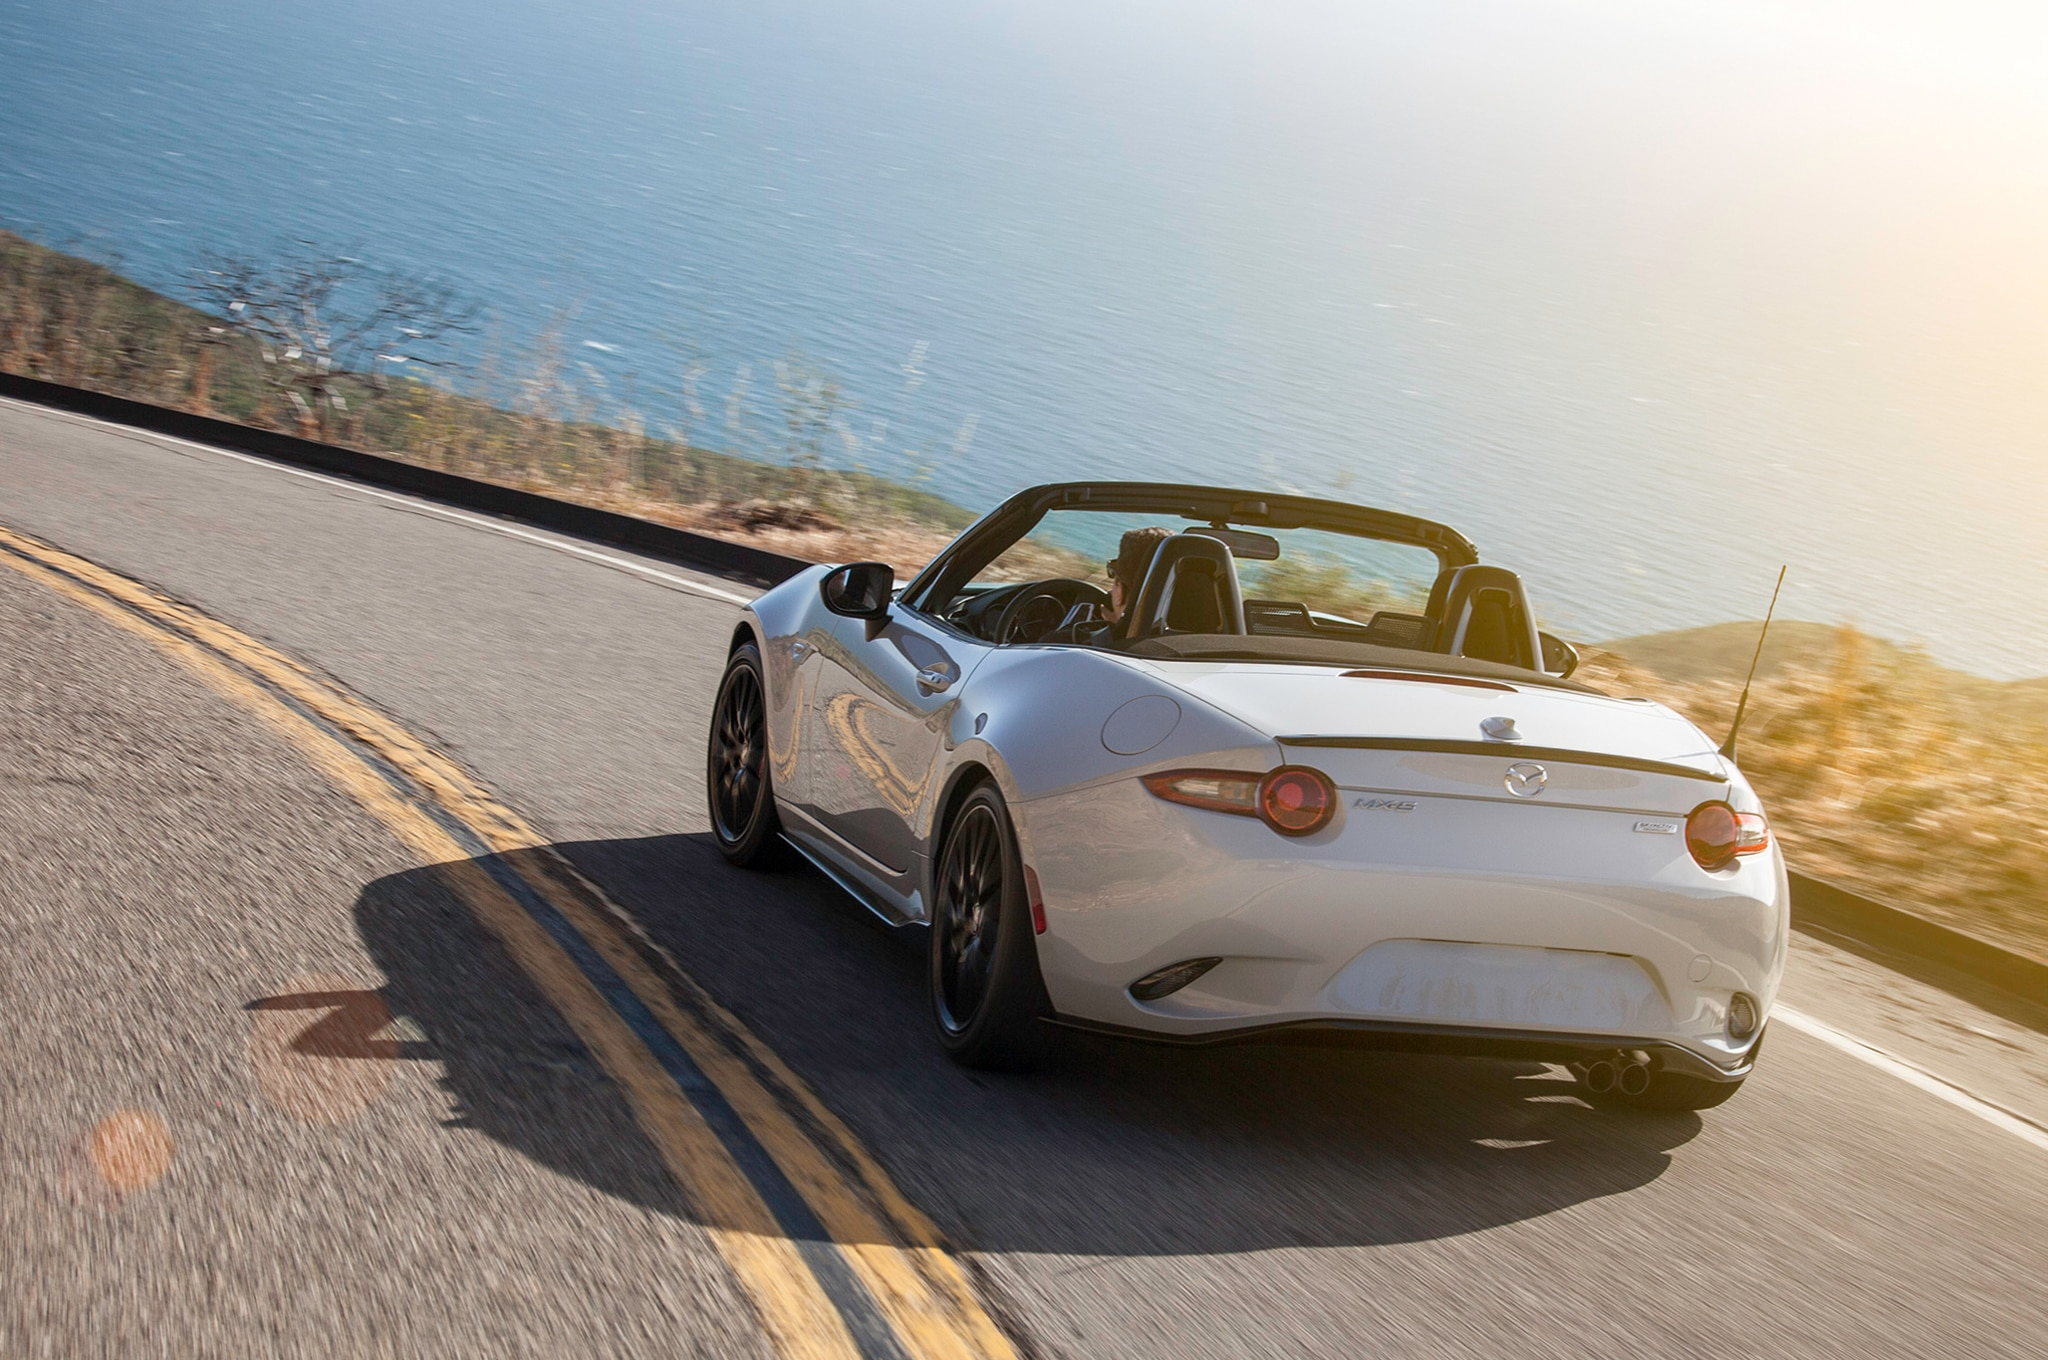 Nothing Compares: Three Decades of Love for the Mazda Miata